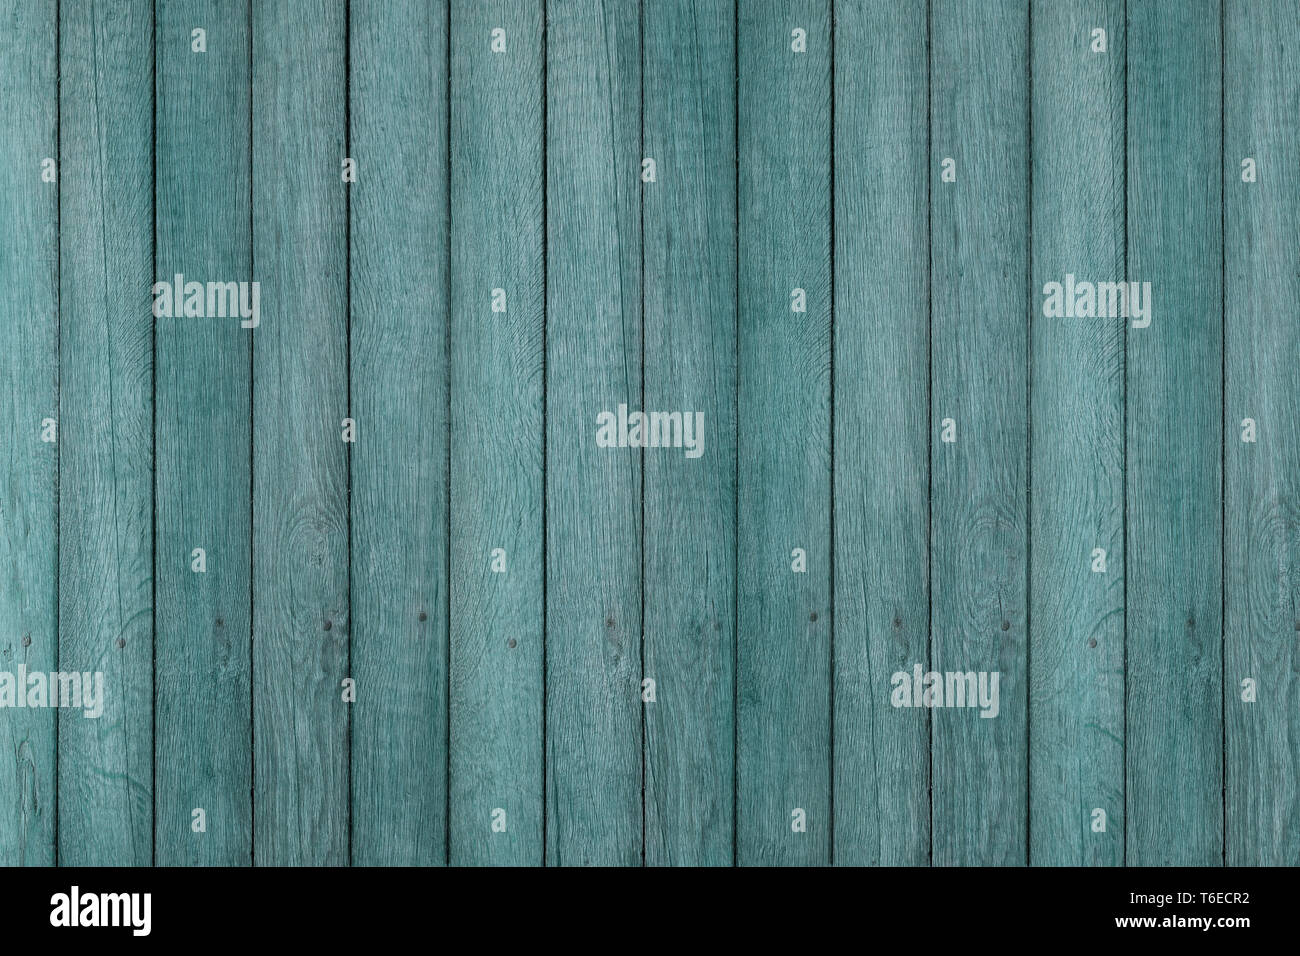 blue grunge wood pattern texture background, wooden planks. - Stock Image